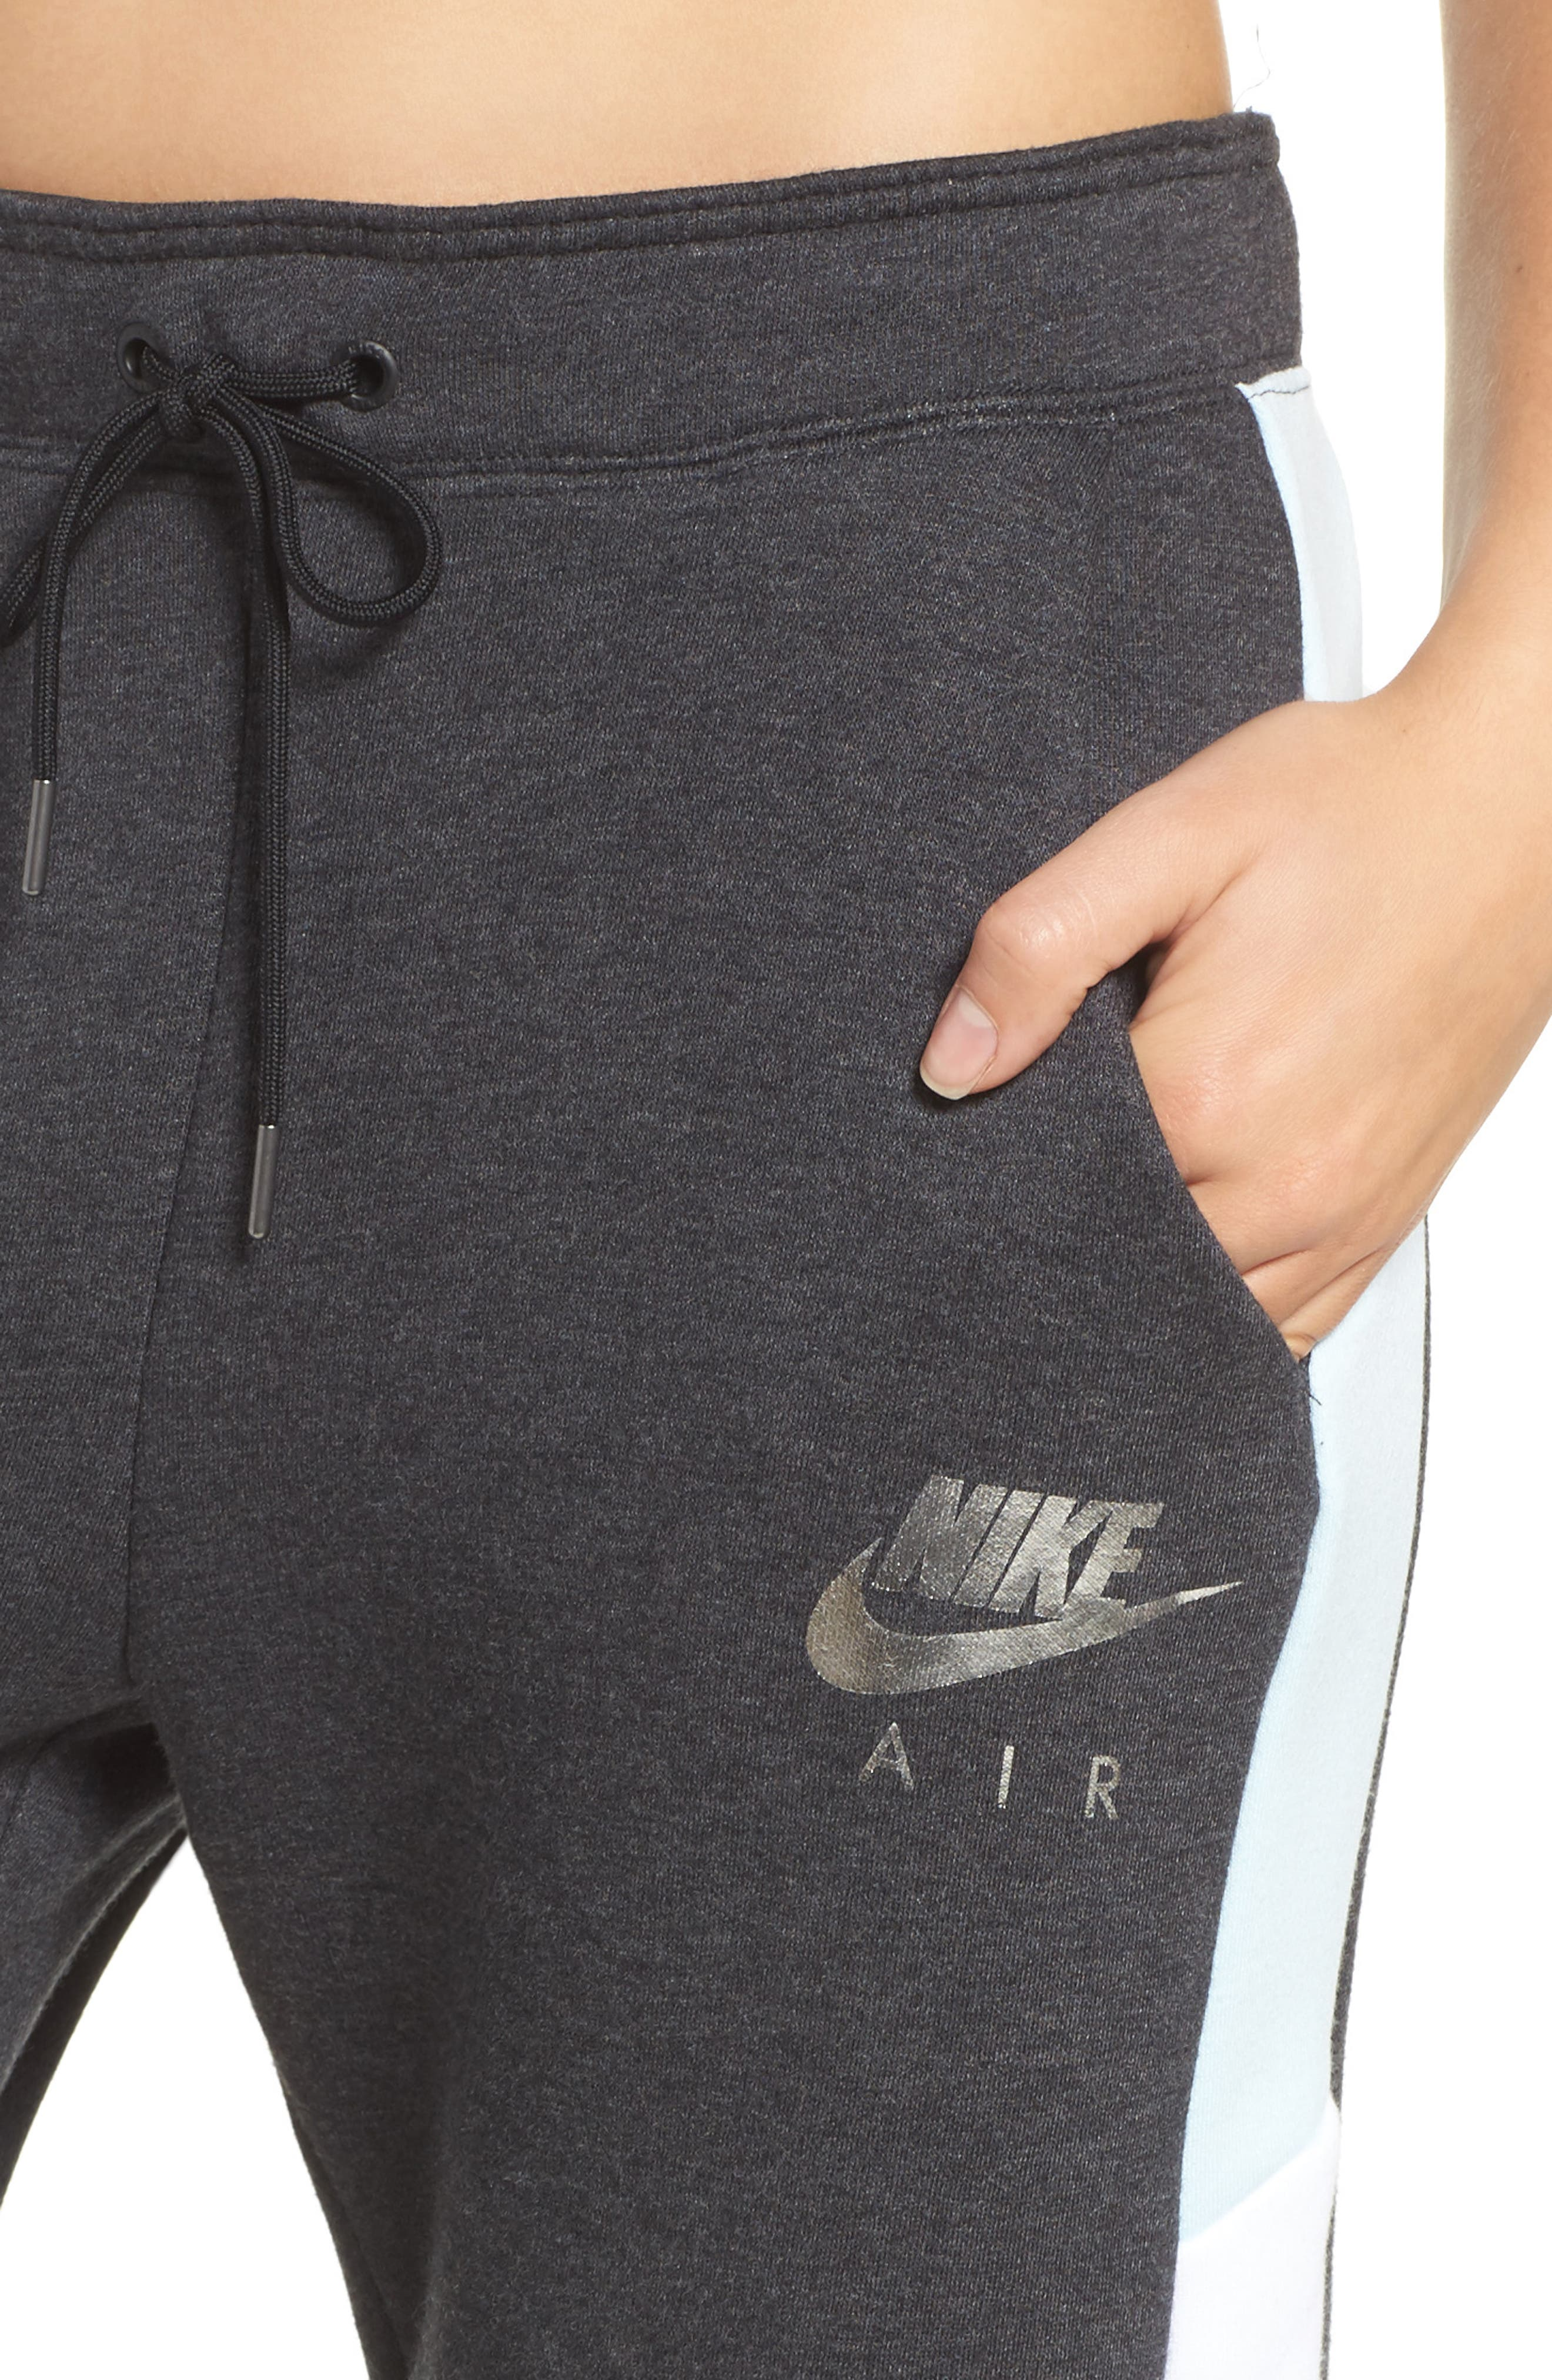 Rally Sweatpants,                             Alternate thumbnail 4, color,                             Black Htr/ White/ Glacier Blue